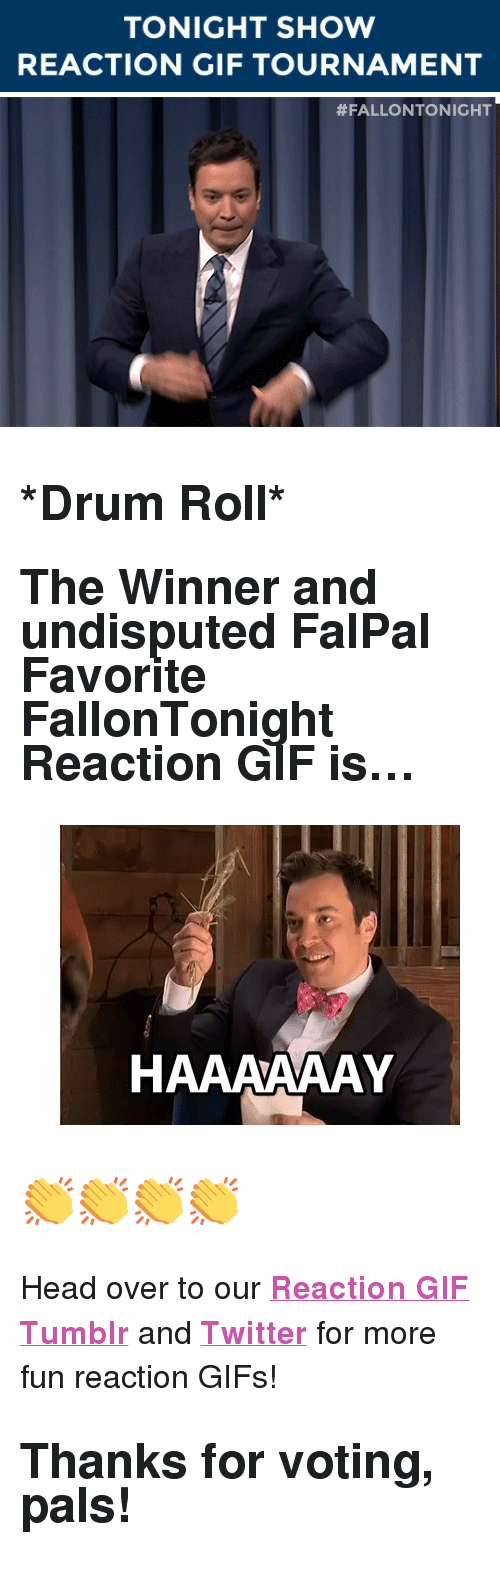 """reaction gifs: TONIGHT SHOW  REACTION GIF TOURNAMENT   <h2><b>*Drum Roll*</b></h2><h2>The Winner and undisputed FalPal Favorite FallonTonight Reaction GIF is&hellip;<br/></h2><figure data-orig-width=""""400"""" data-orig-height=""""300"""" class=""""tmblr-full""""><img src=""""https://78.media.tumblr.com/4064a42ef1f616f26fa788794096c645/tumblr_inline_ntt6ayEBXj1qgt12i_500.gif"""" alt=""""image"""" data-orig-width=""""400"""" data-orig-height=""""300""""/></figure><h2>👏👏👏👏</h2><p>Head over to our <a href=""""http://fallontonightgifs.tumblr.com/"""" target=""""_blank""""><b>Reaction GIF Tumblr</b></a> and <b><a href=""""https://twitter.com/TonightShowGIFs"""" target=""""_blank"""">Twitter</a></b> for more fun reaction GIFs!</p><h2><b>Thanks for voting, pals!</b></h2>"""